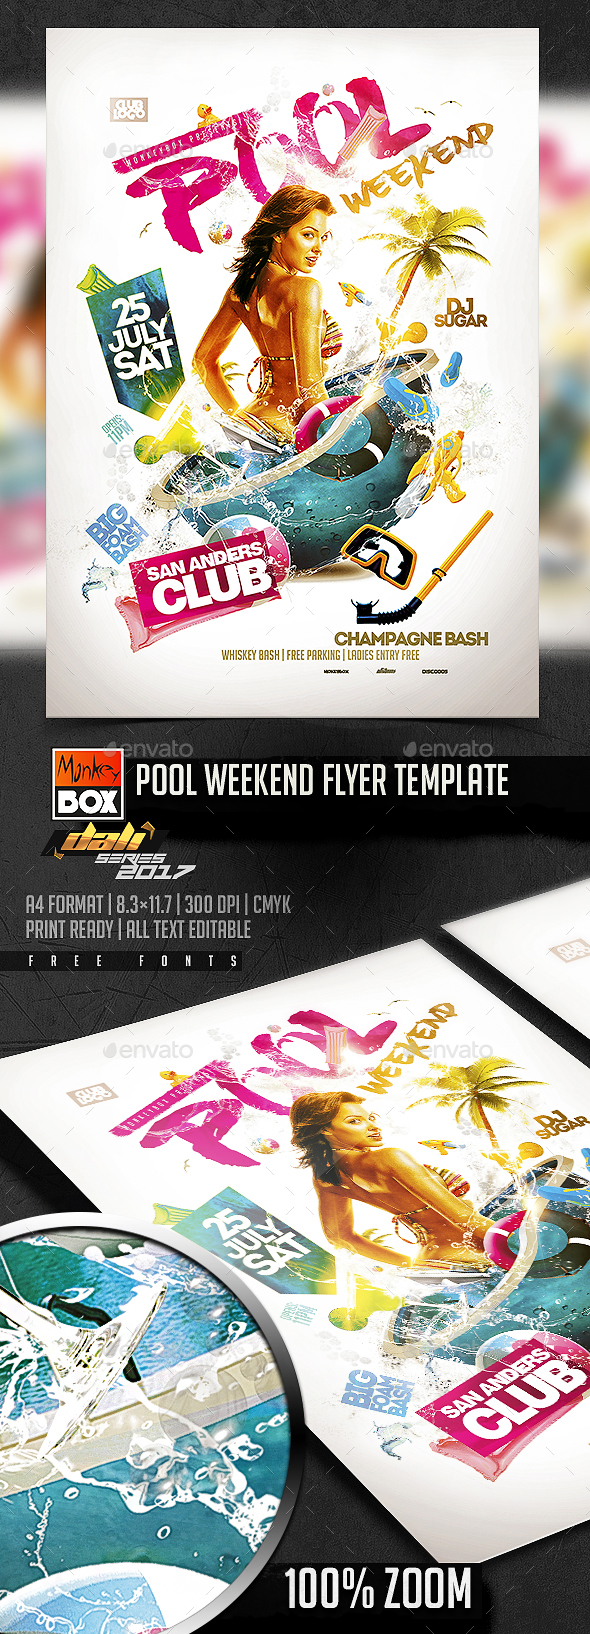 Pool Weekend Flyer Template - Events Flyers